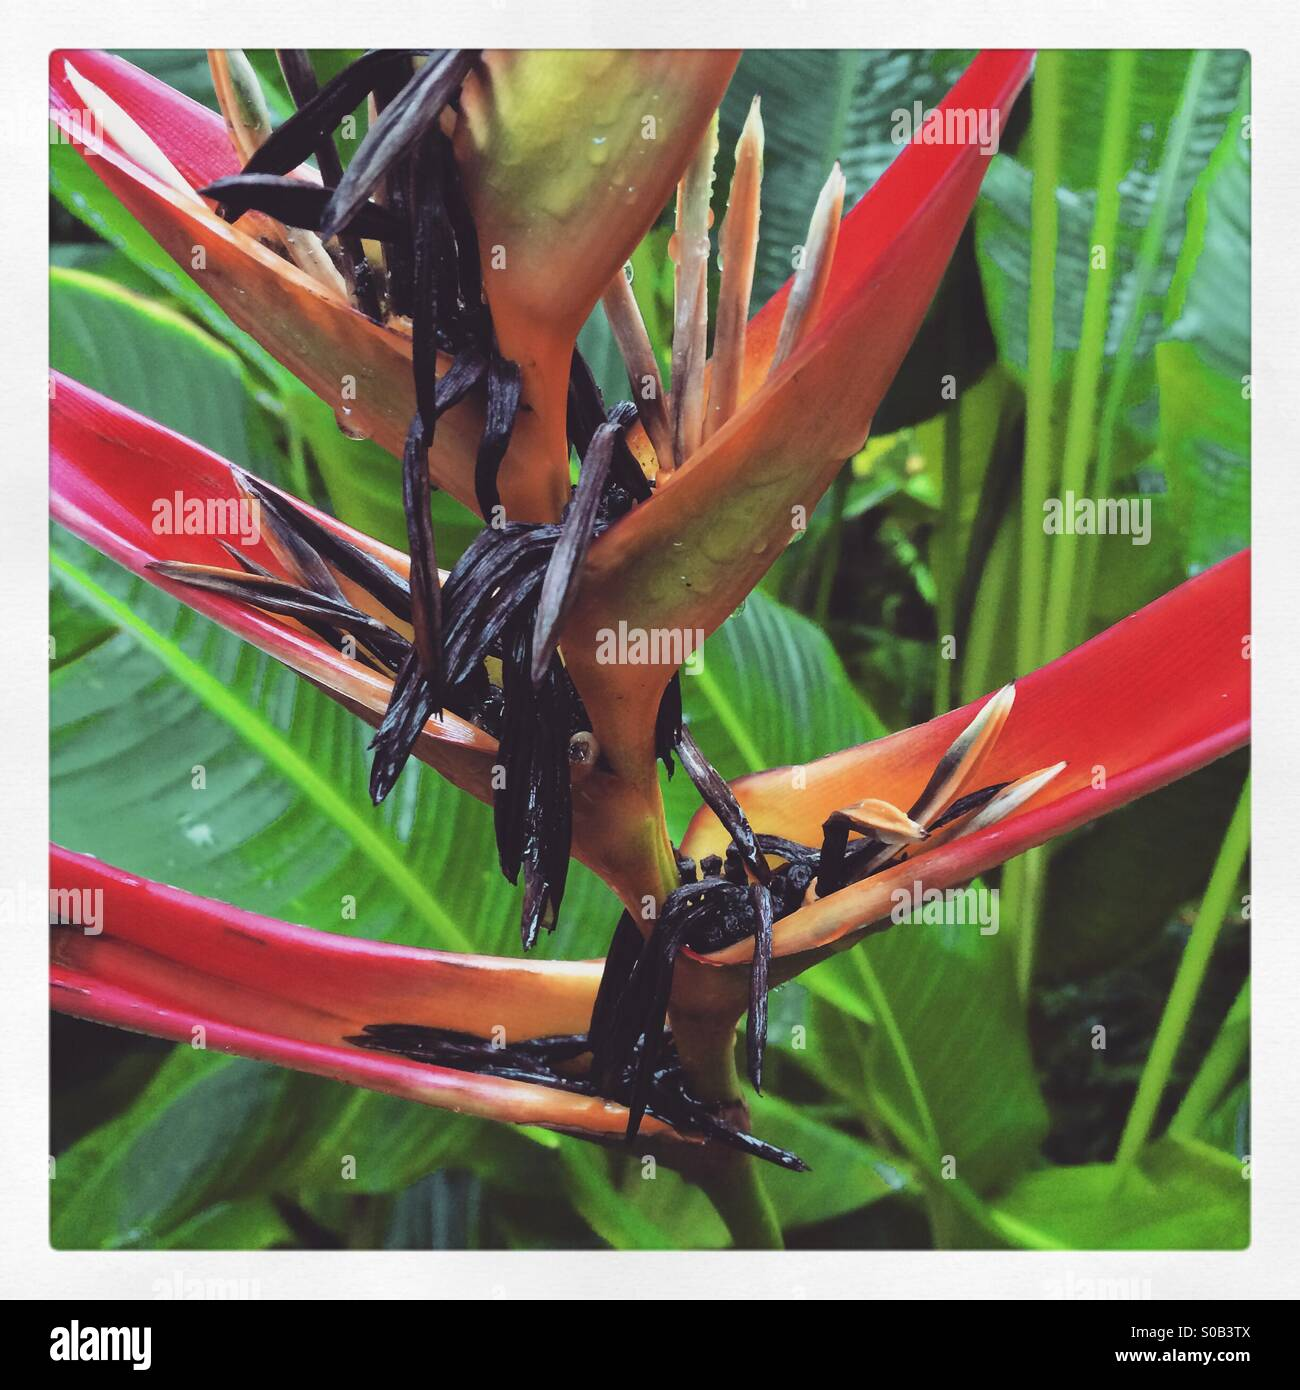 A Heliconia jungle plant - Stock Image